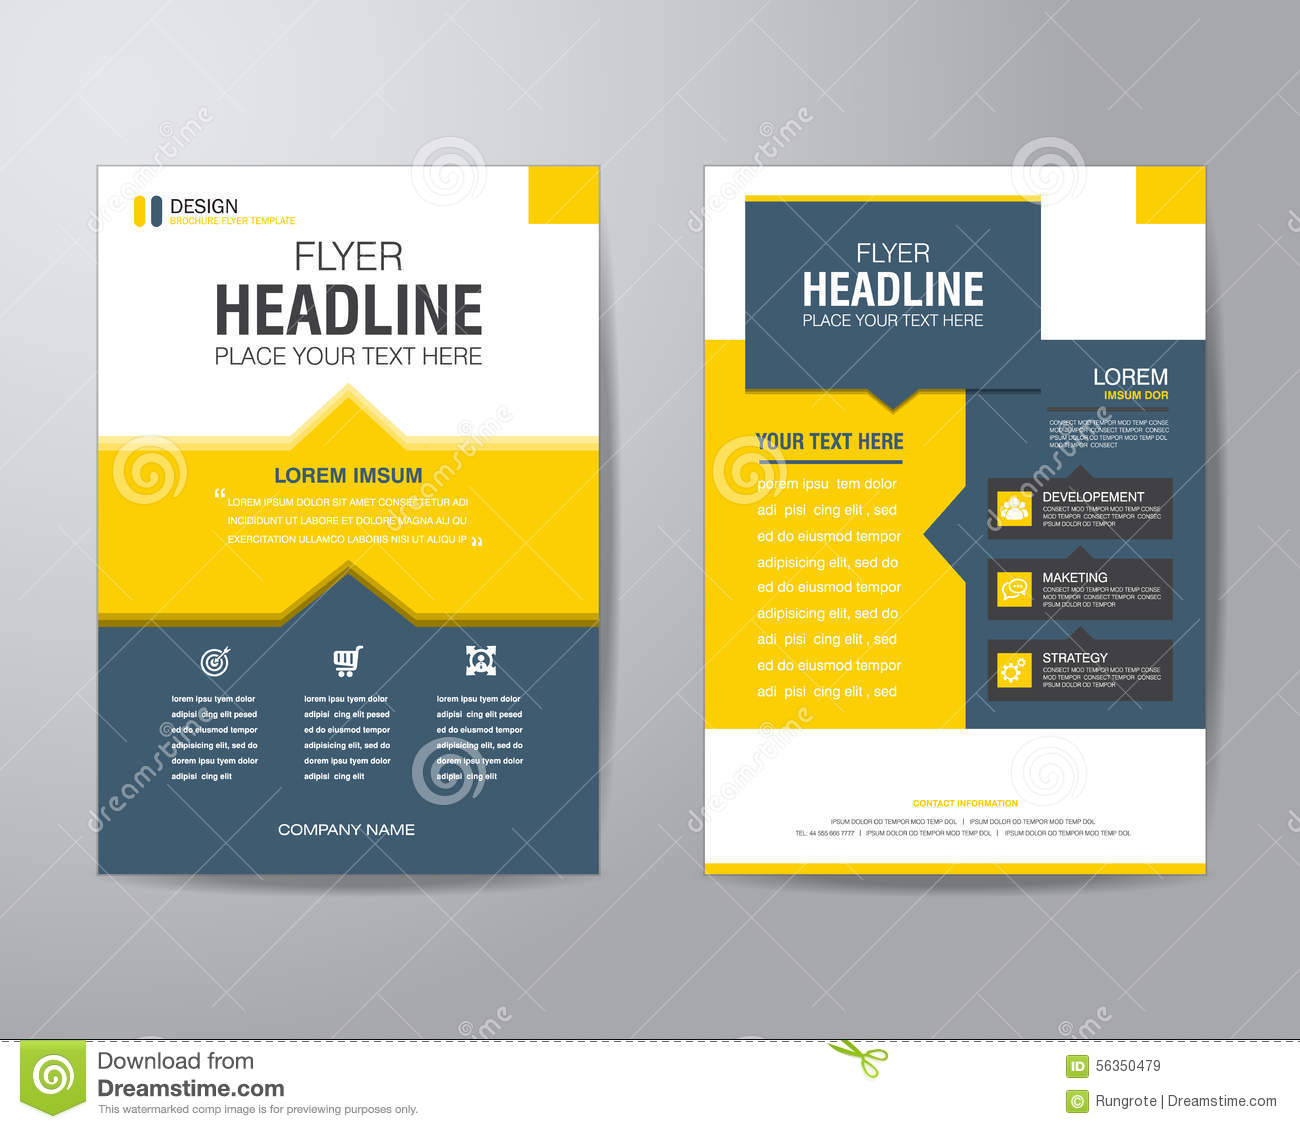 business brochure template free - business brochure flyer design layout template in a4 size